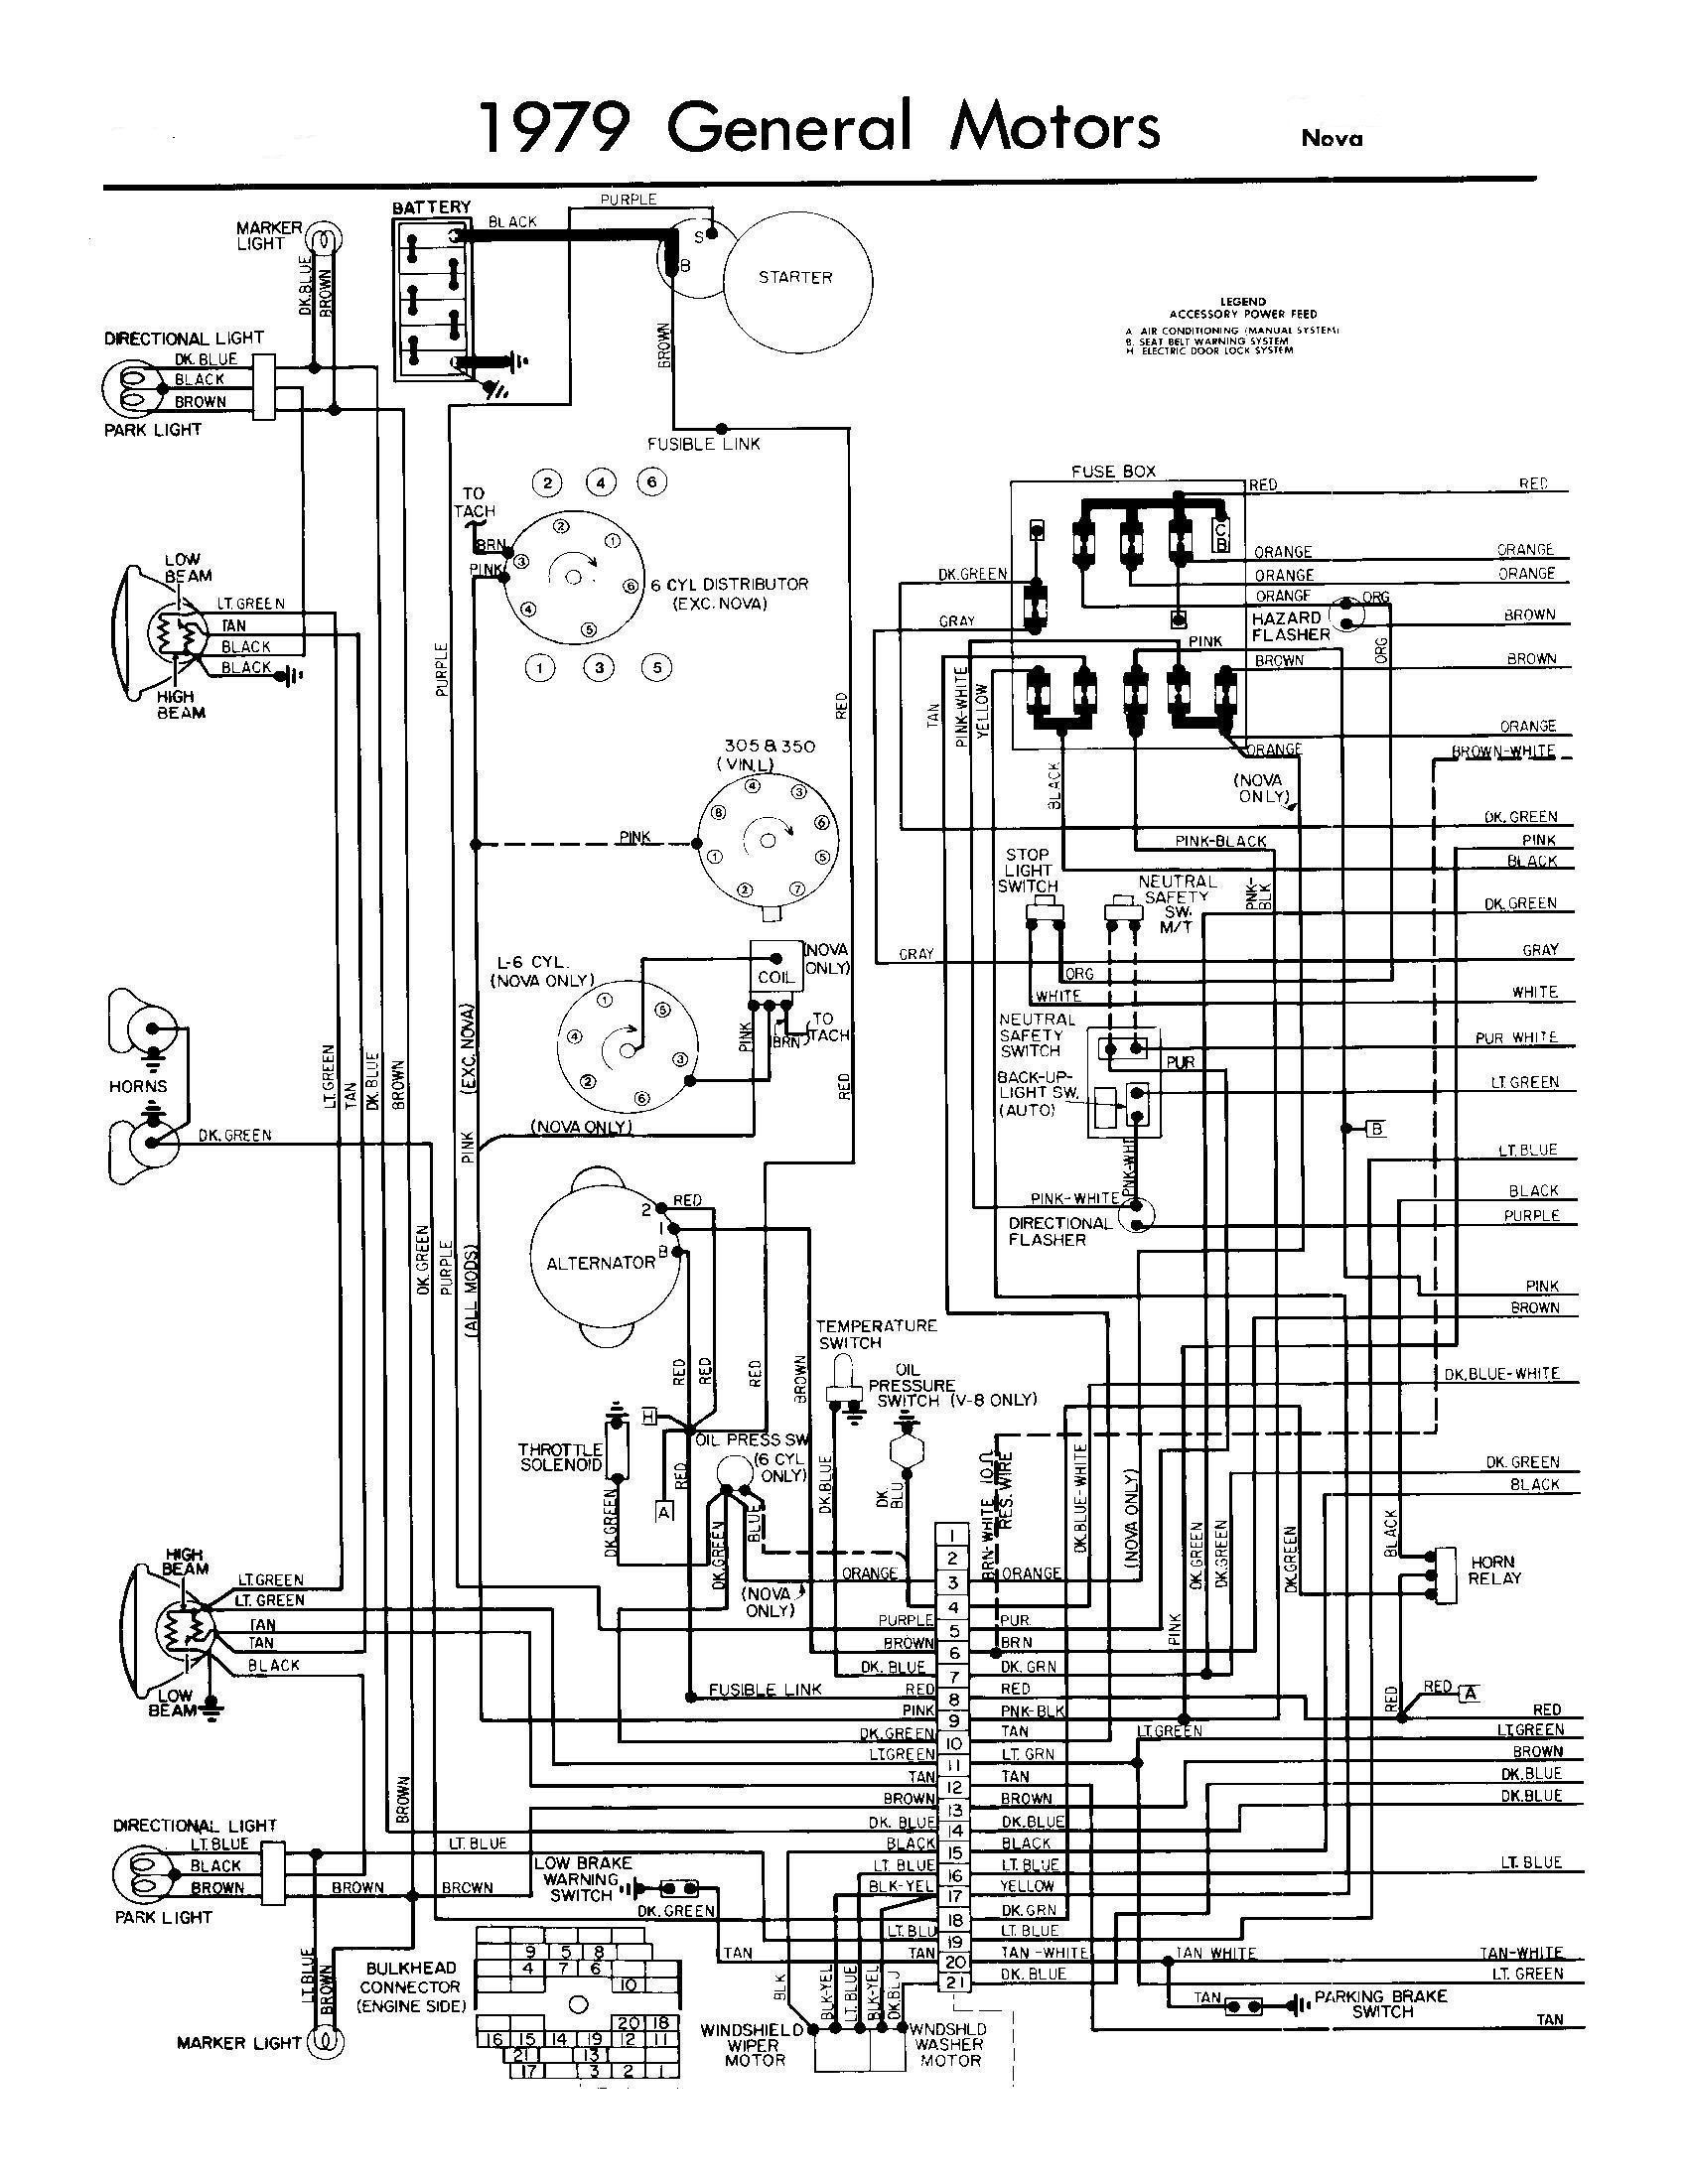 1975 Gmc Wiring Diagram - 1970 Malibu Headlight Switch Wiring Diagram for Wiring  Diagram SchematicsWiring Diagram Schematics